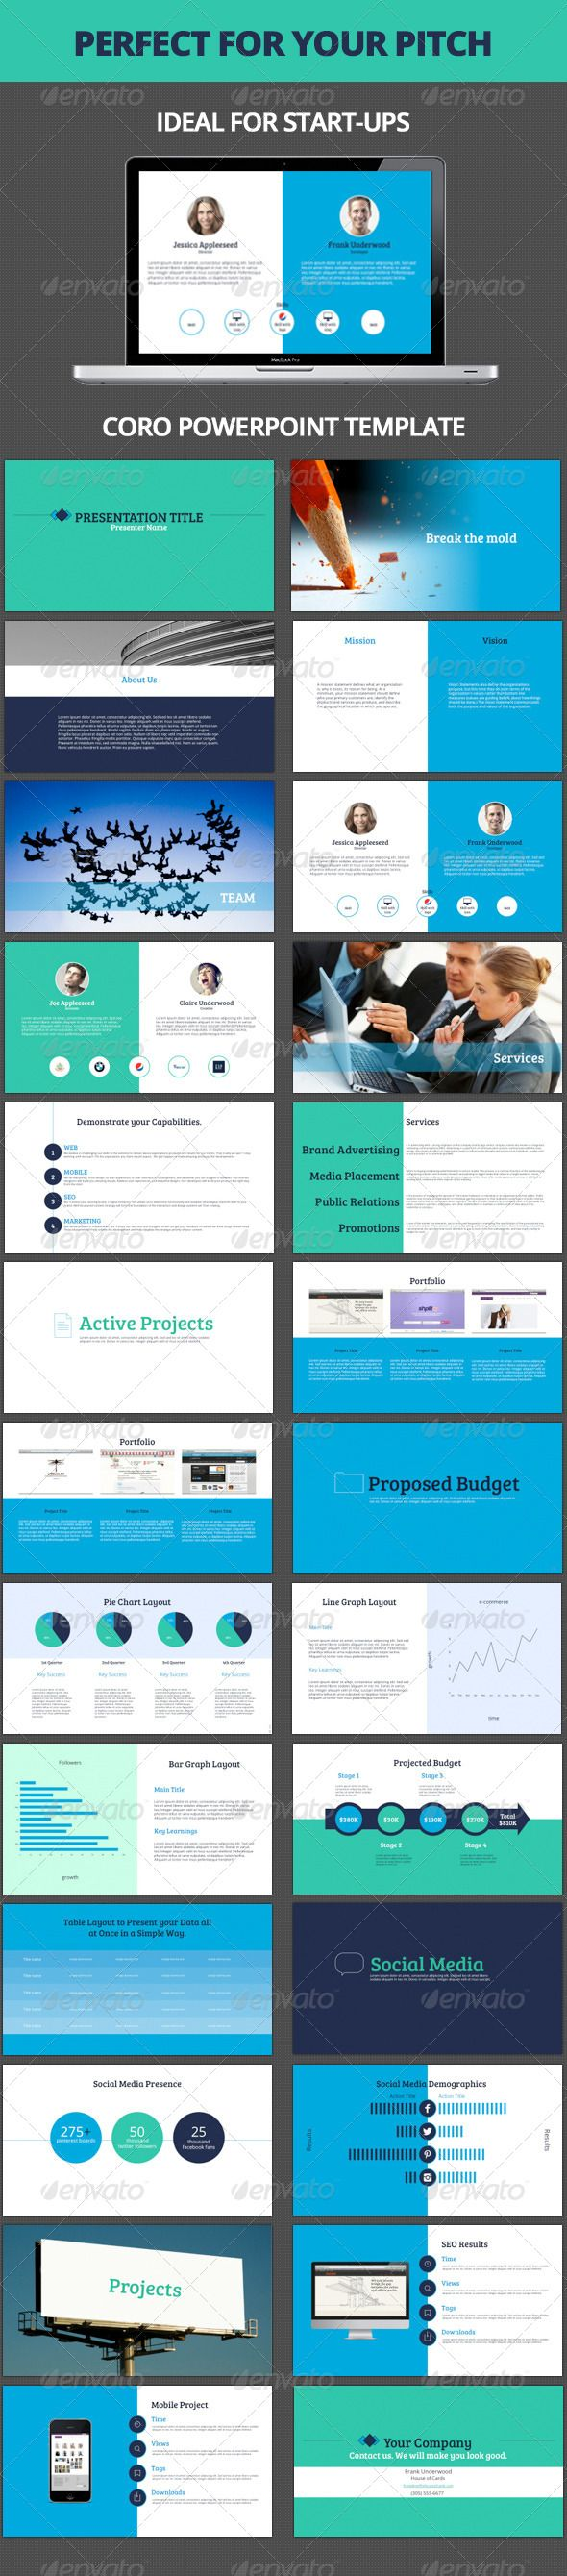 Coro Powerpoint Template - Presentation Templates